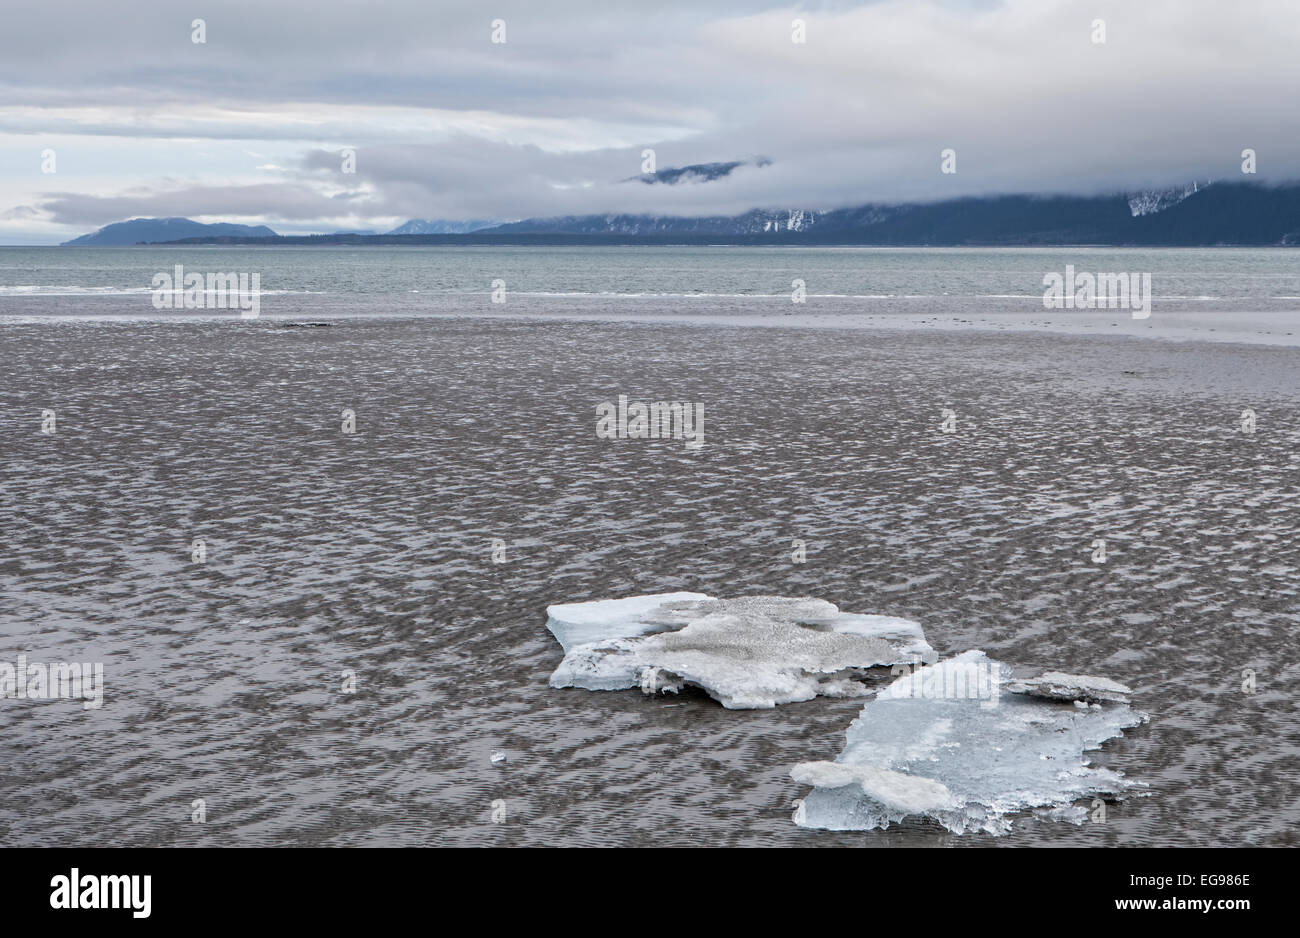 Ice bergs stranded on a Southeast Alaskan beach at low tide with clouds over mountains in the background. - Stock Image